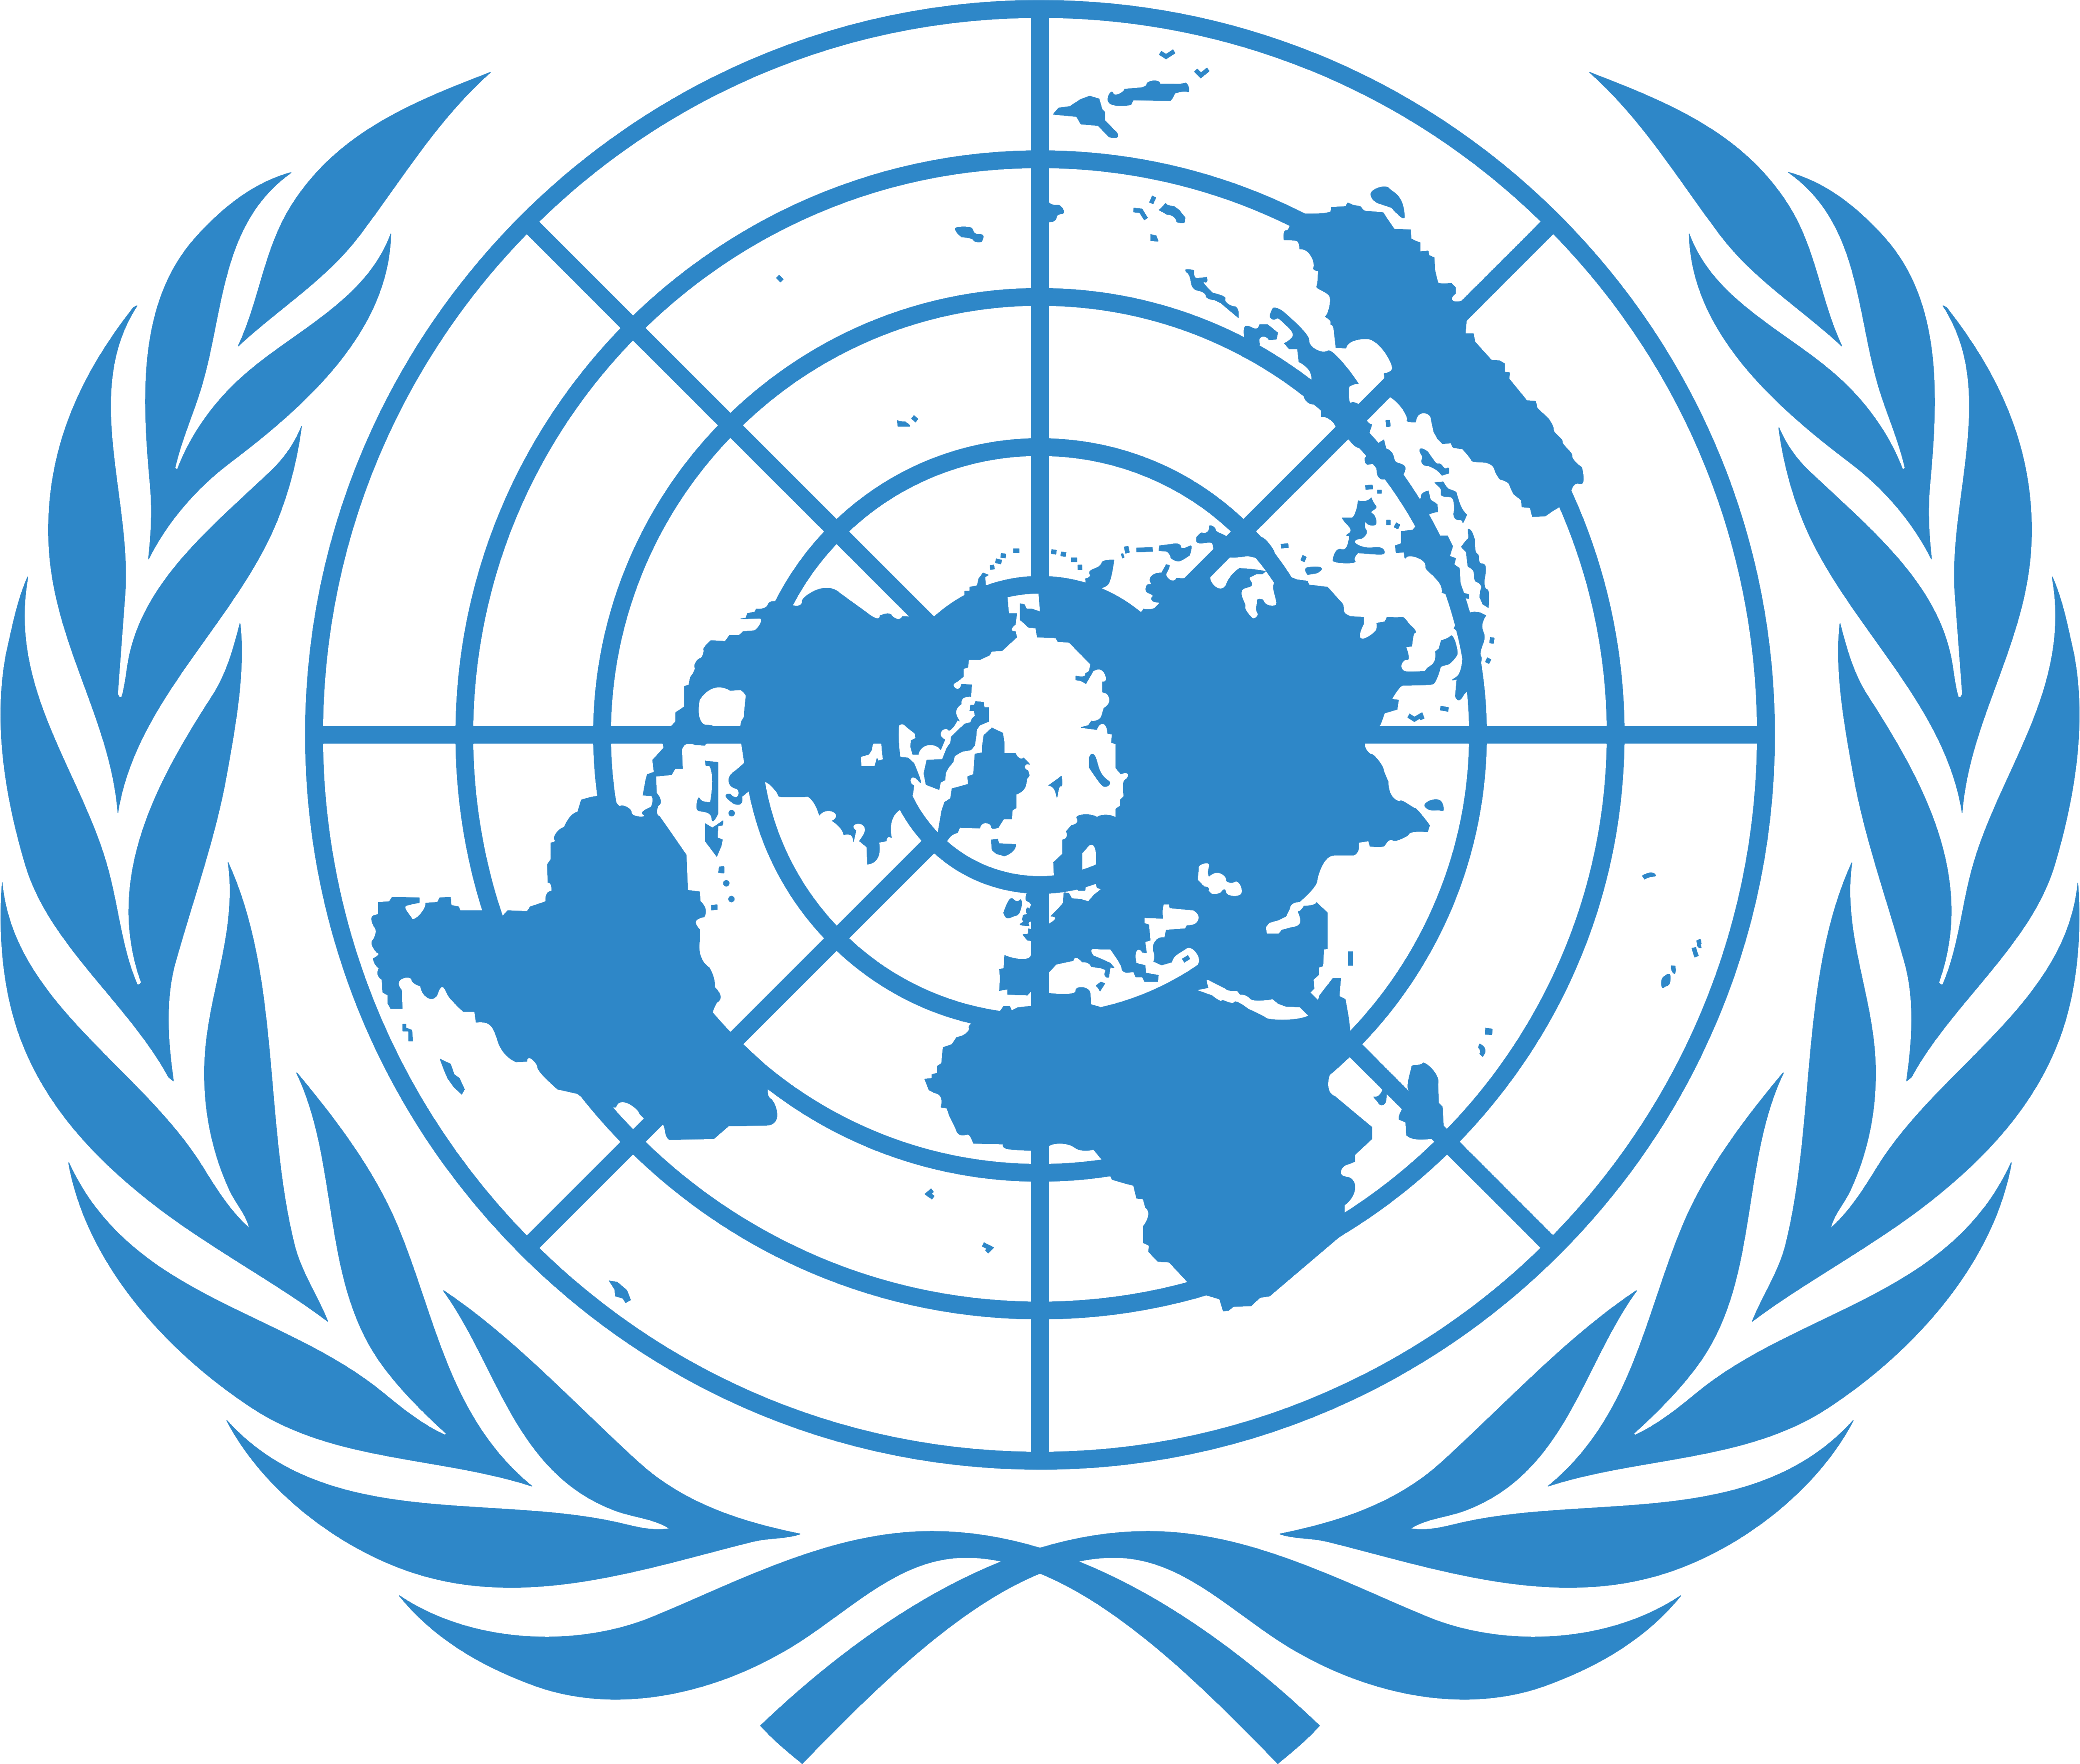 an analysis of the un ensuring a fight for equality for dalits across india and the world Empowerment of women in india: a critical analysis united nations women empowerment in india the principle of gender equality is.